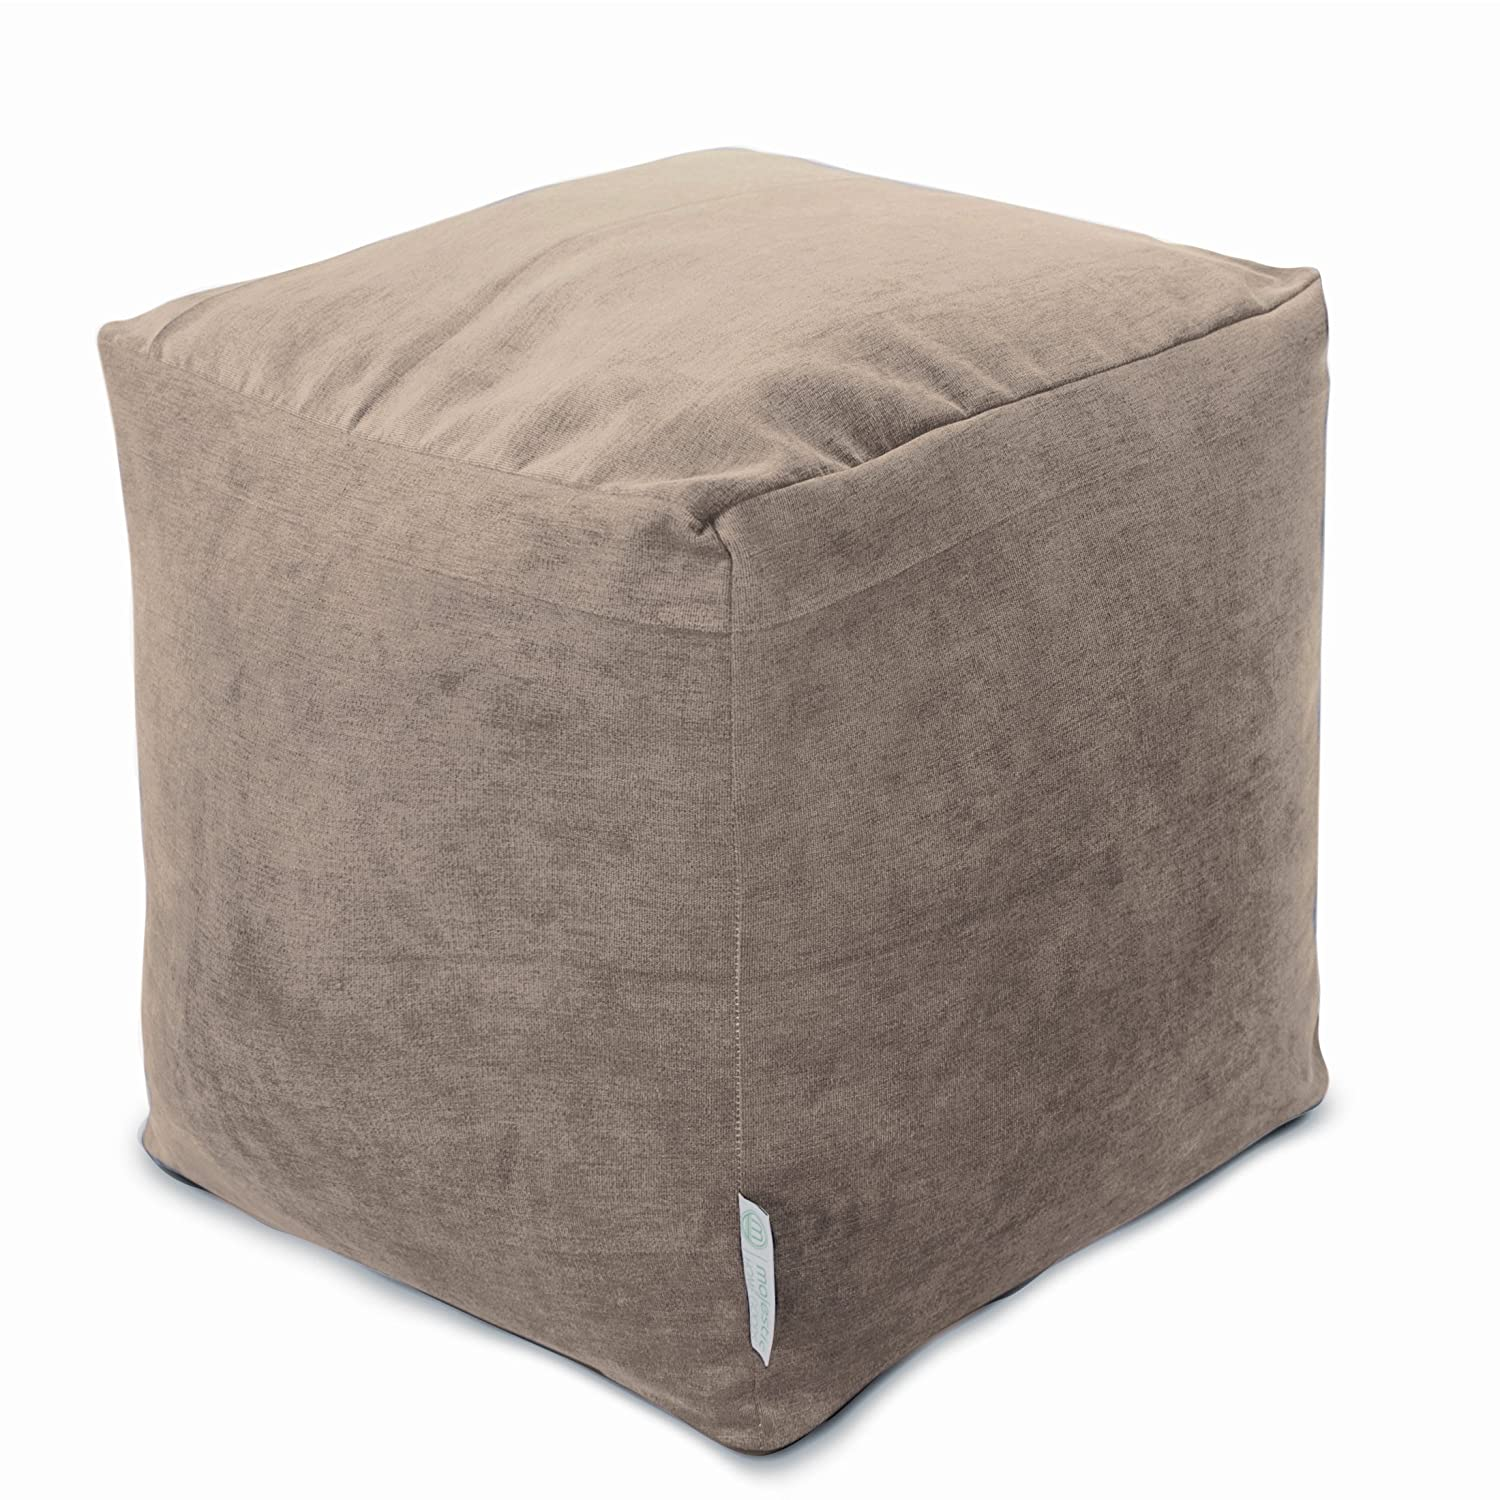 Majestic Home Goods Apple Villa Indoor Bean Bag Ottoman Pouf Cube 17